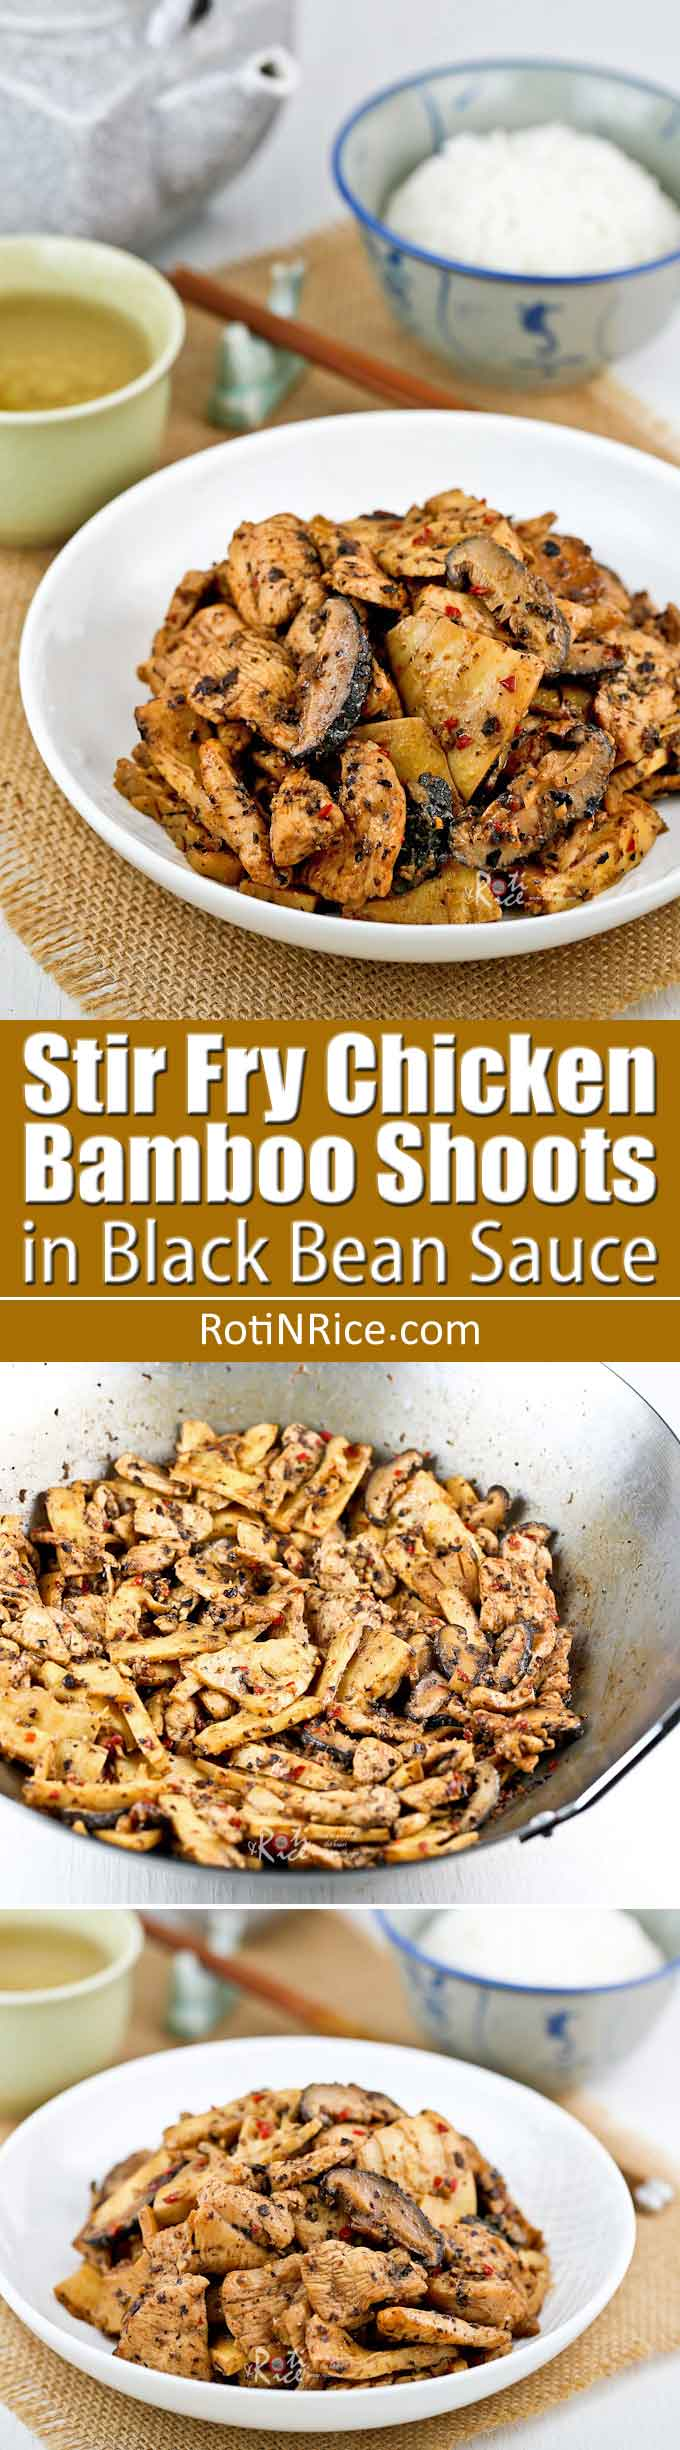 This tasty Stir Fry Chicken Bamboo Shoots in Black Bean Sauce has a bold umami flavor, best savored with a steaming bowl of white rice. | RotiNRice.com